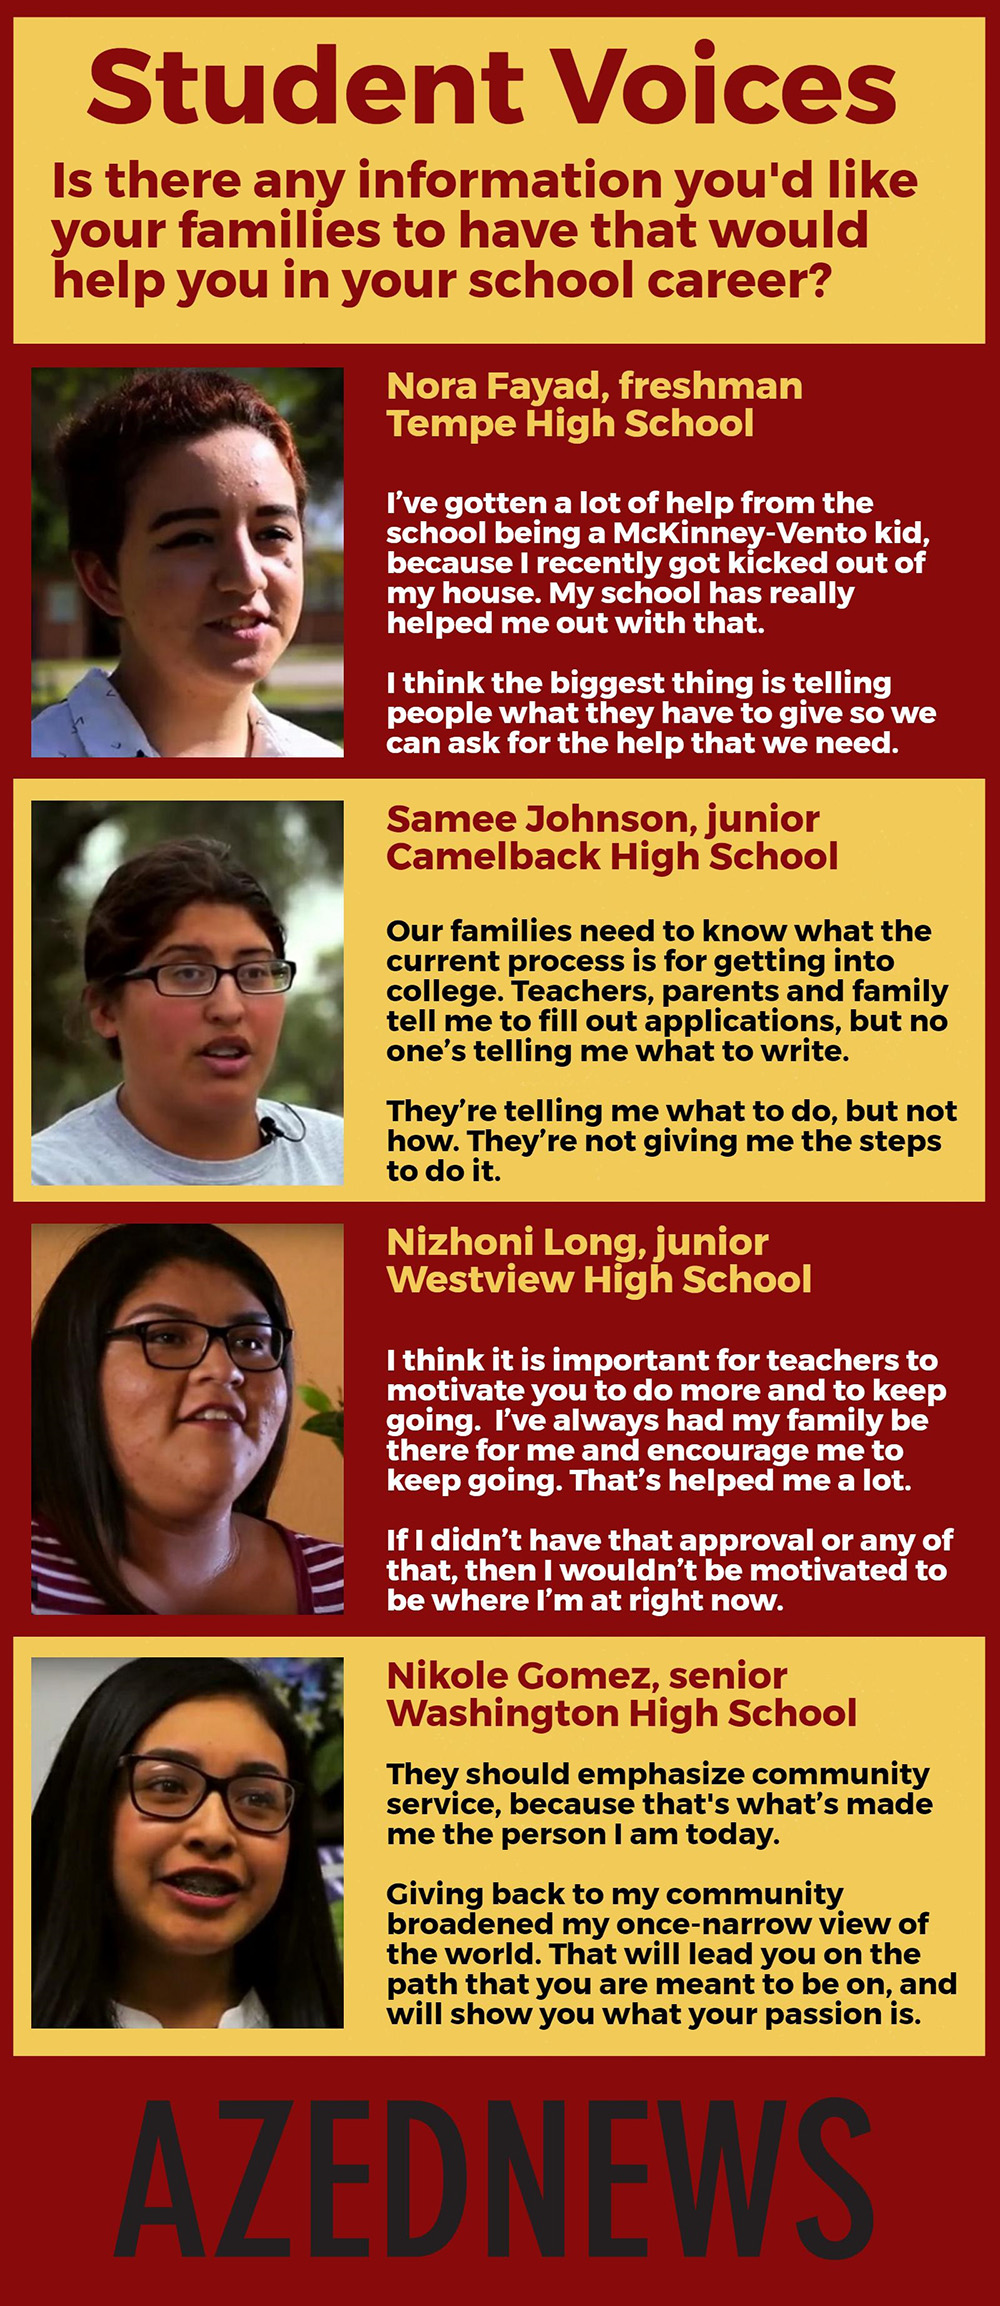 Student Voices AZEdNewsStudentVoicesInfographic